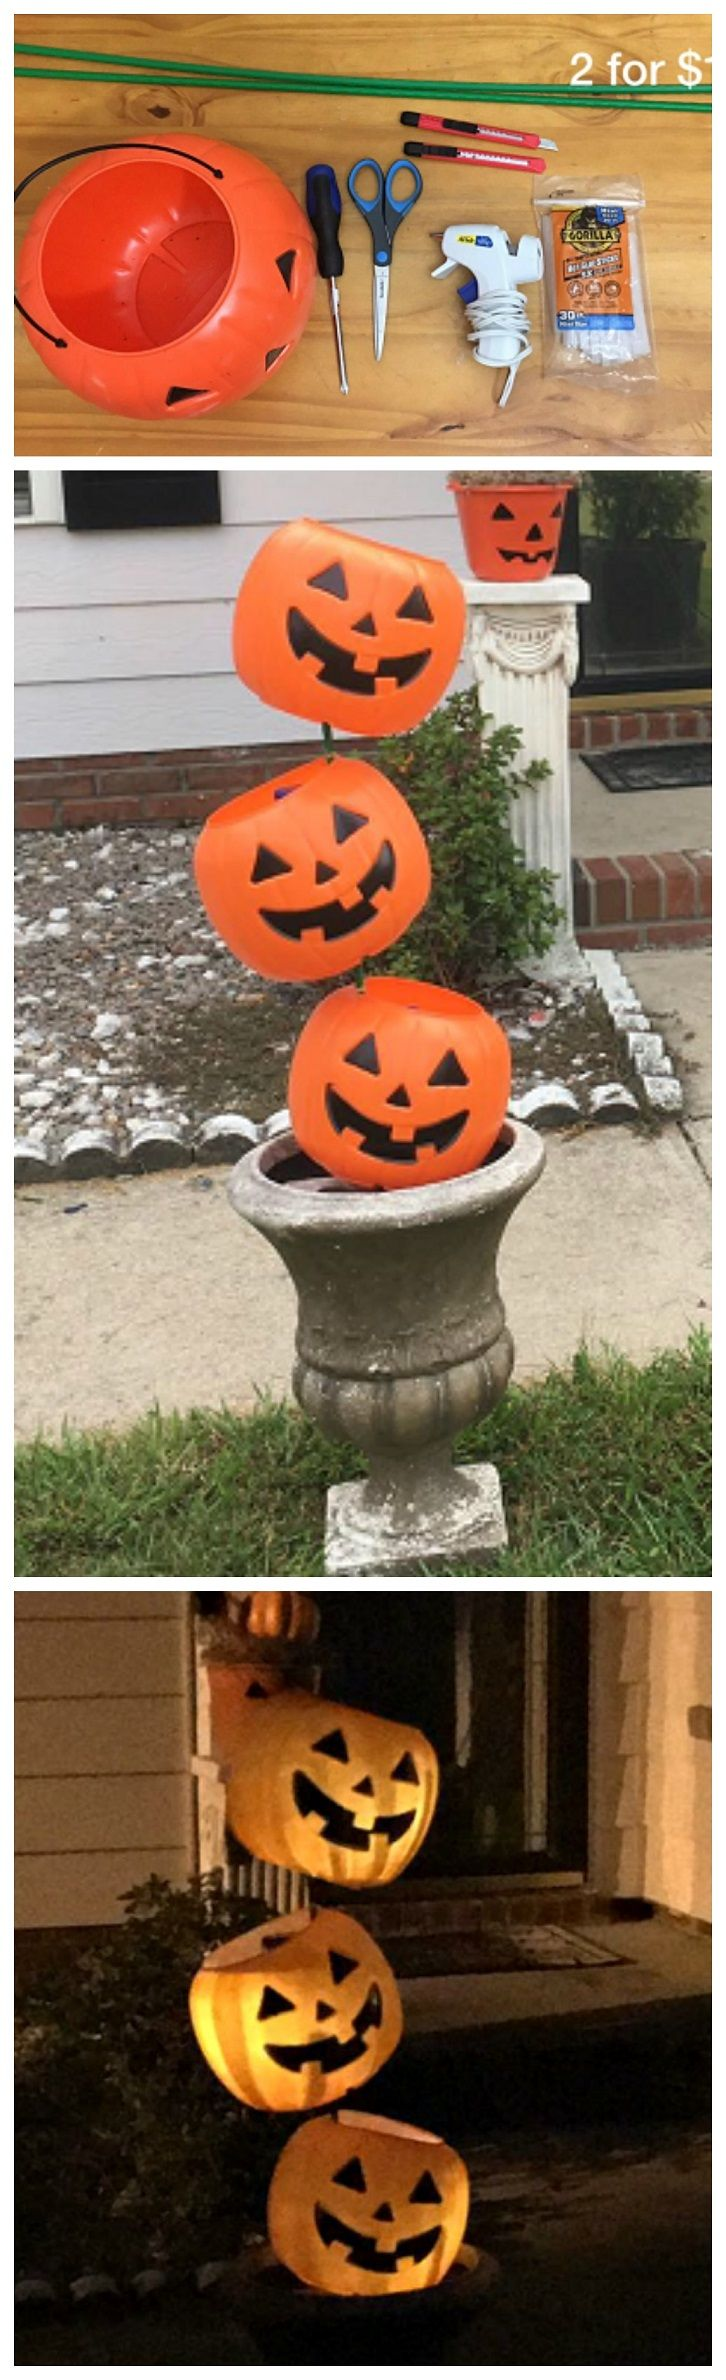 Homemade halloween decorations - Tipsy Plastic Pumpkin Decoration Homemade Halloween